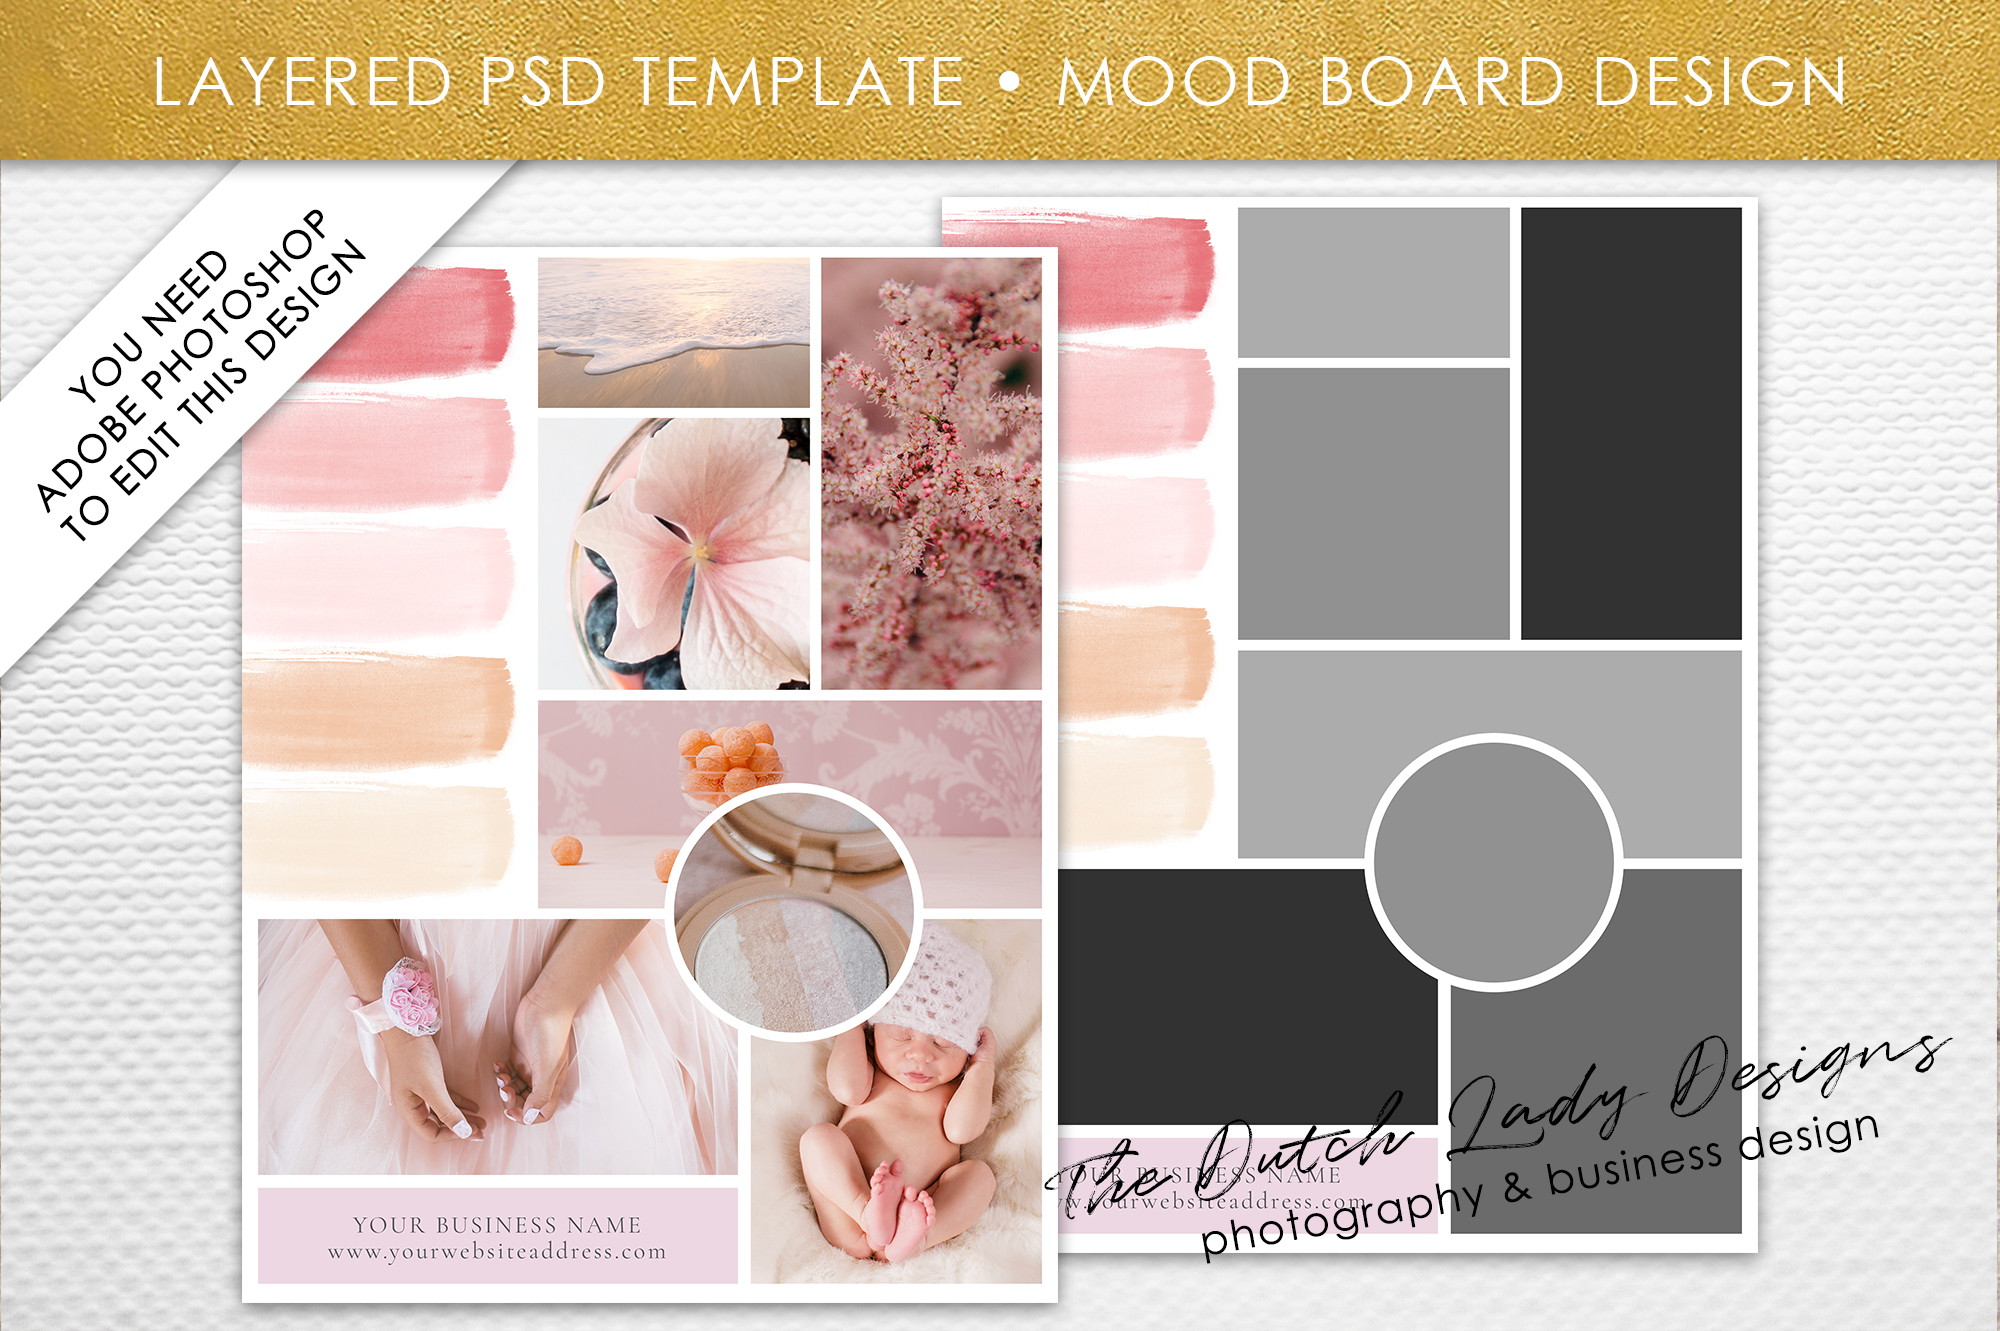 Mood Board Template | Mood Vision Board Template For Adobe Photoshop Layered Psd